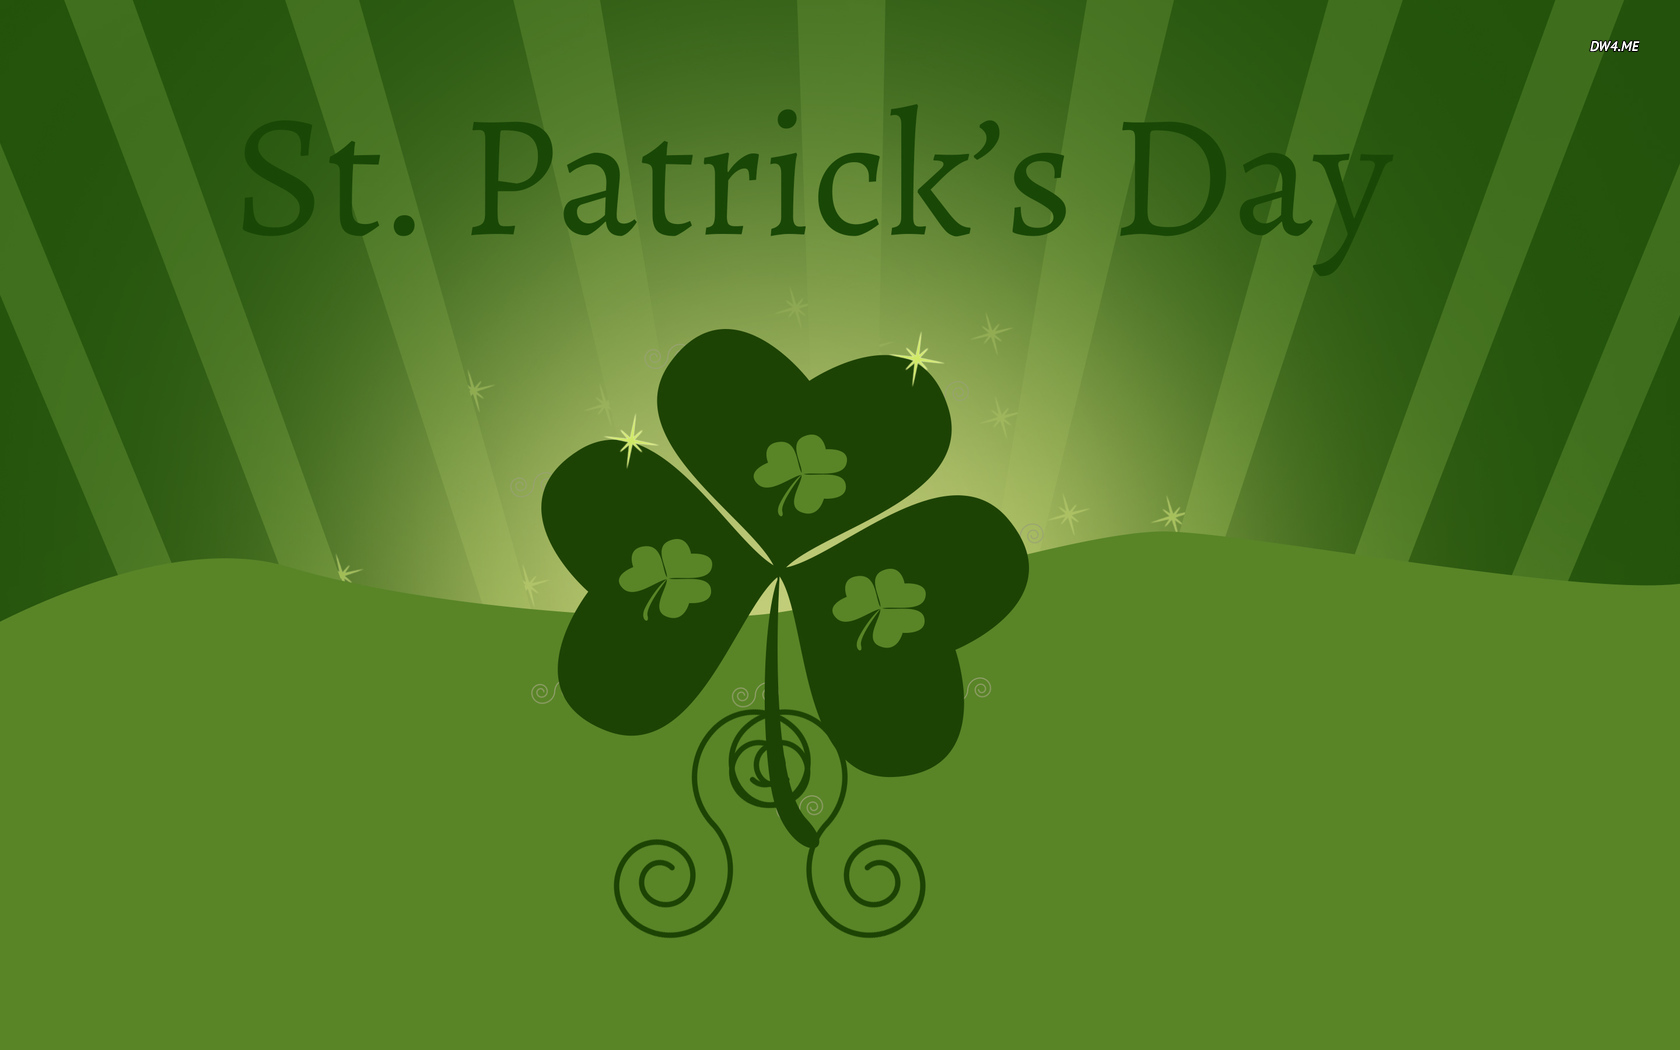 St Patricks Day wallpaper   Holiday wallpapers   2621 1680x1050